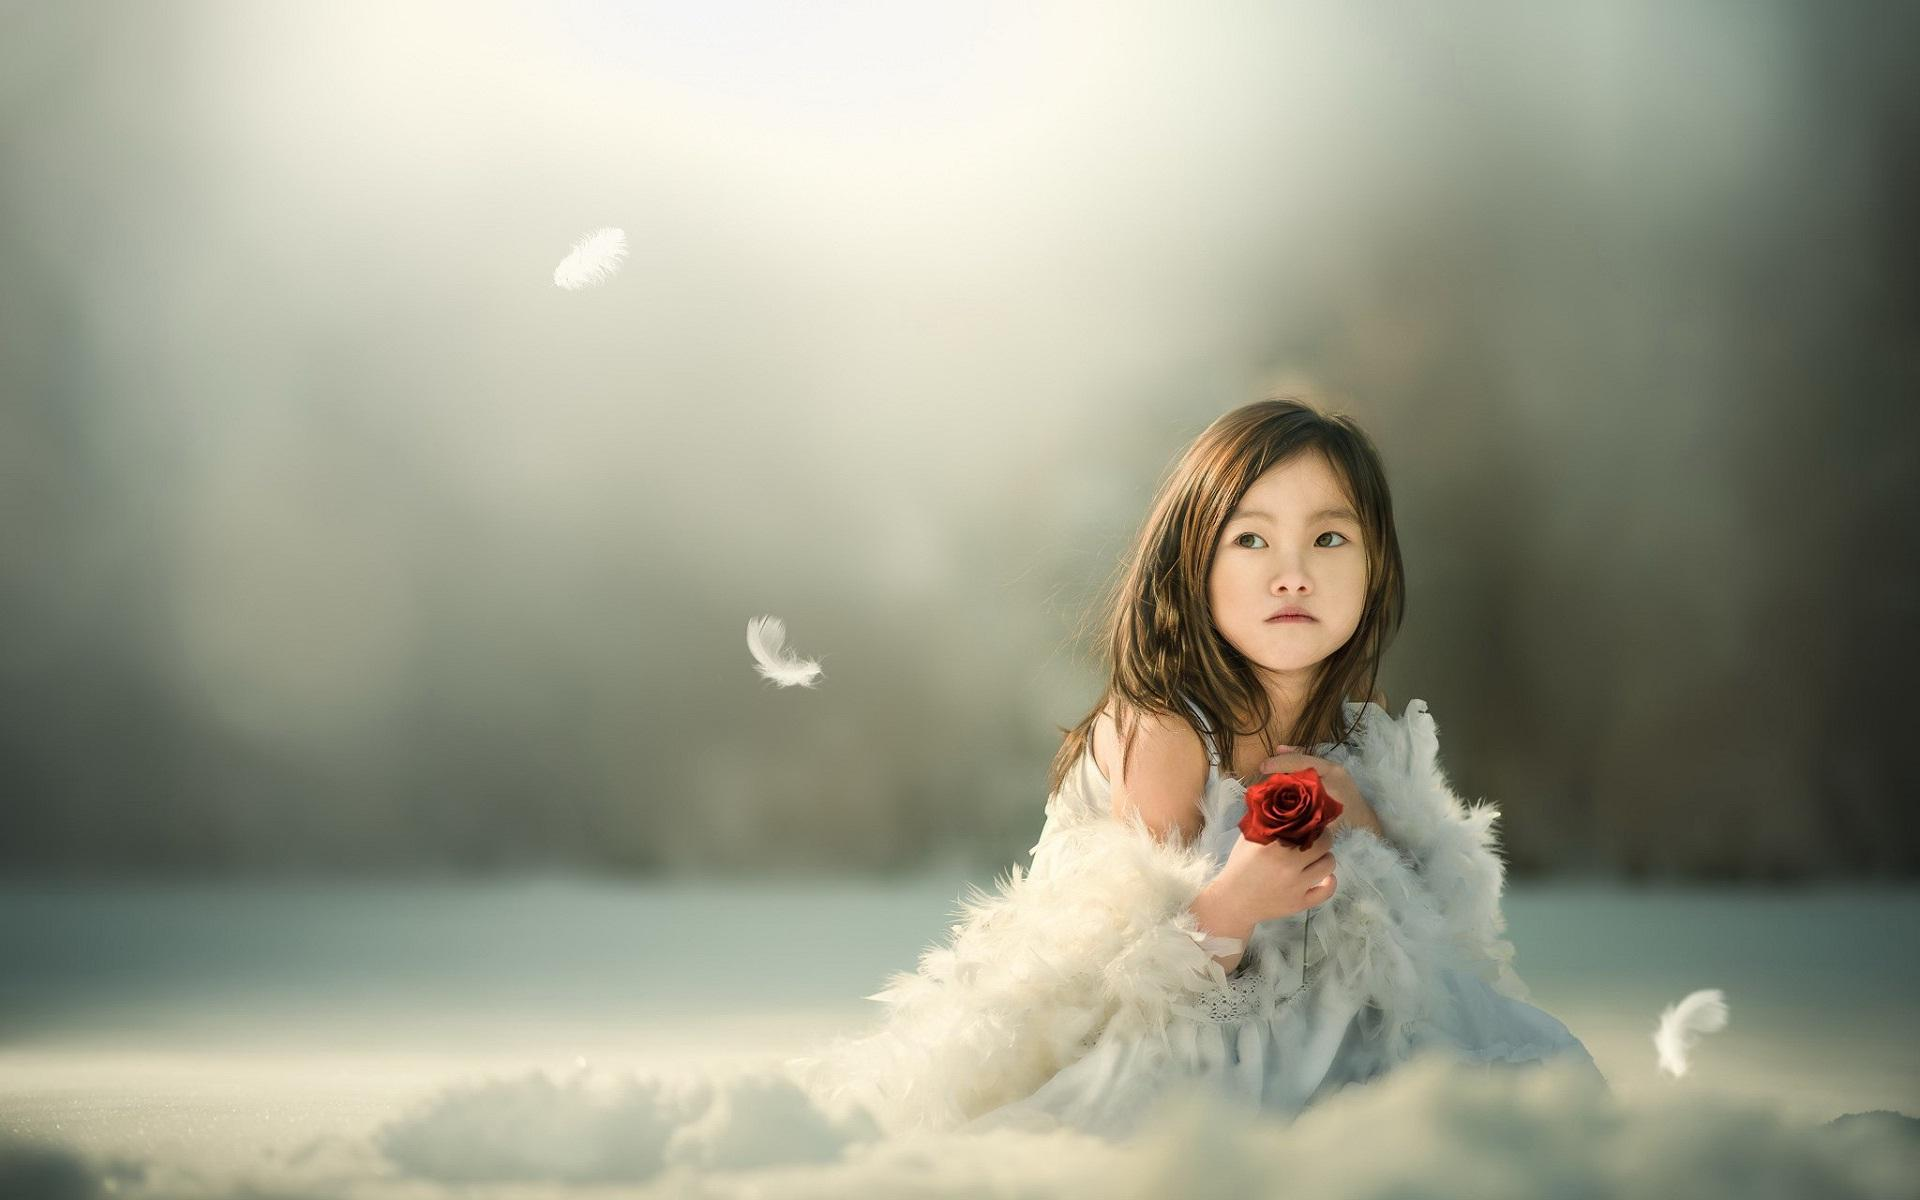 Cute Small Girls Wallpapers Wallpaper Cave